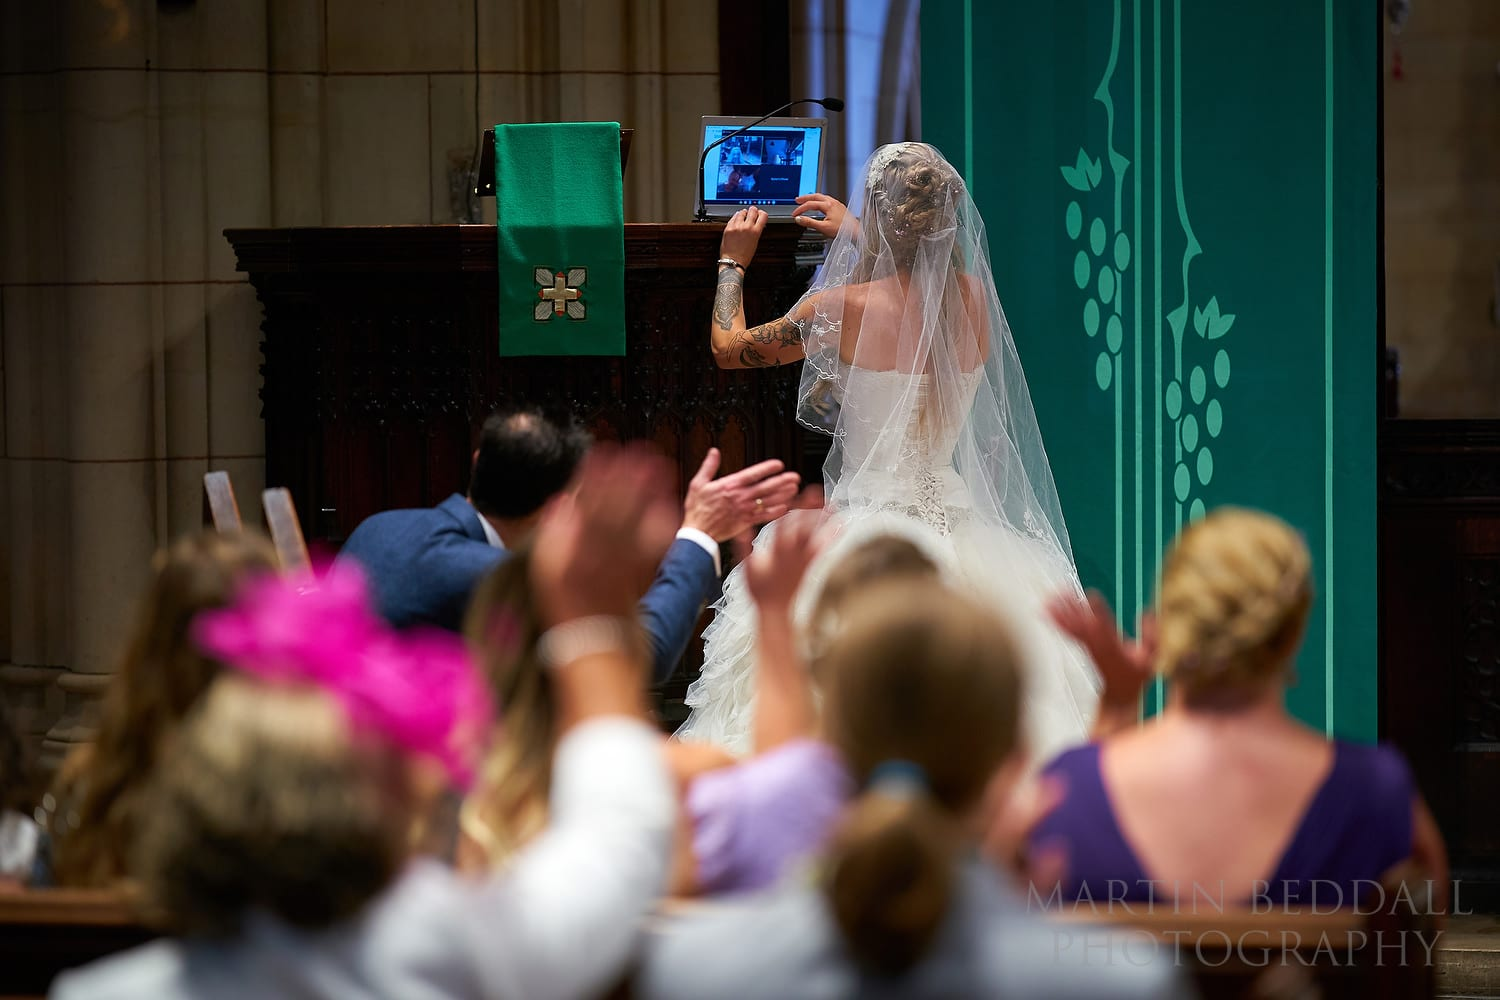 Weddings in 2020 Livestreaming the wedding ceremony